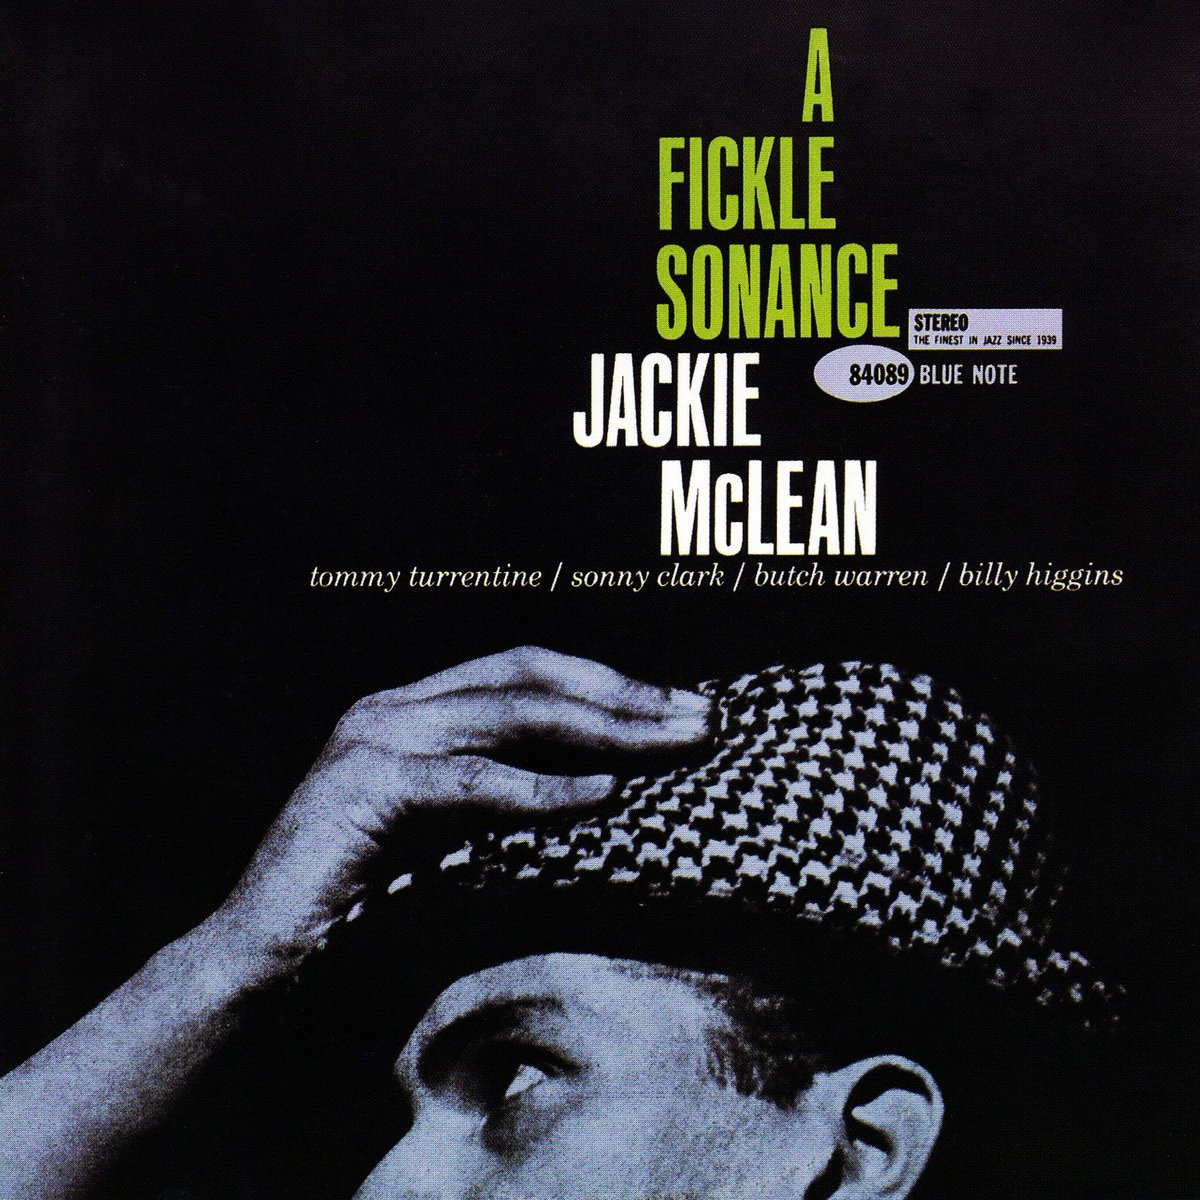 #JackieMcLean #AFickleSonance --> a hardbop gem featured on The Blue Note Monthly https://t.co/PFUEq9mhdQ @Spotify